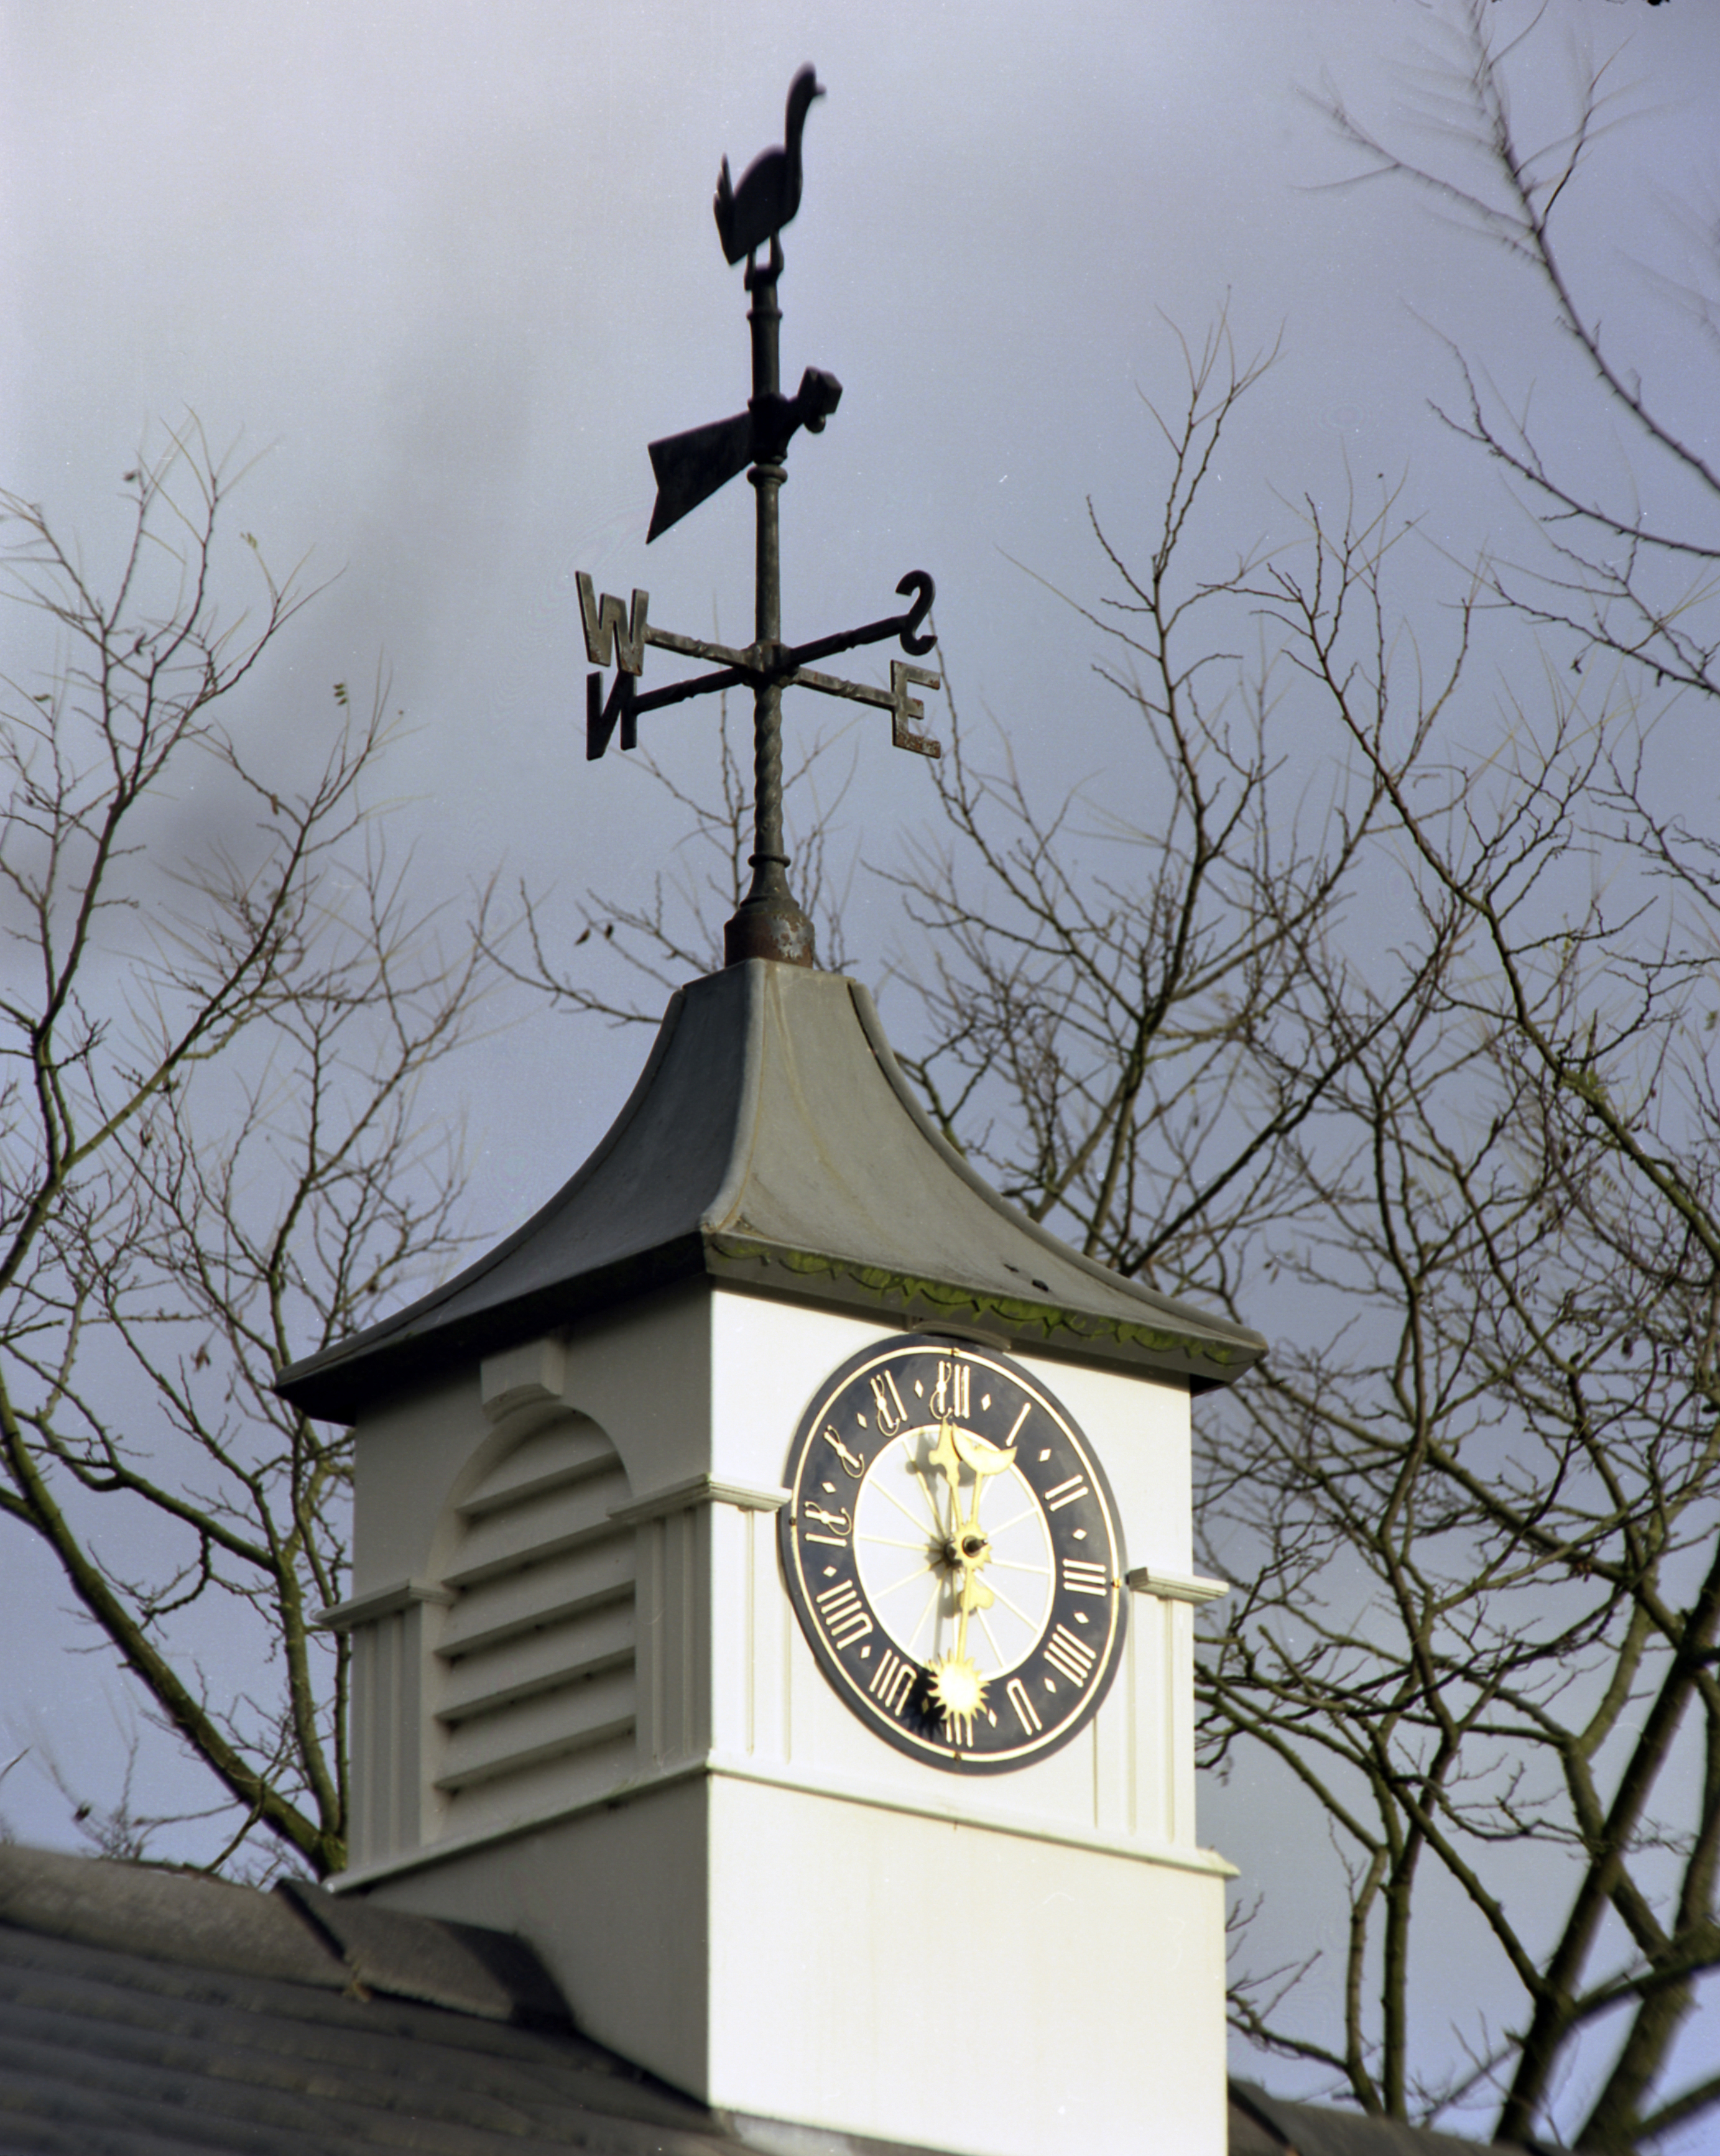 Medieval dial in a clock tower